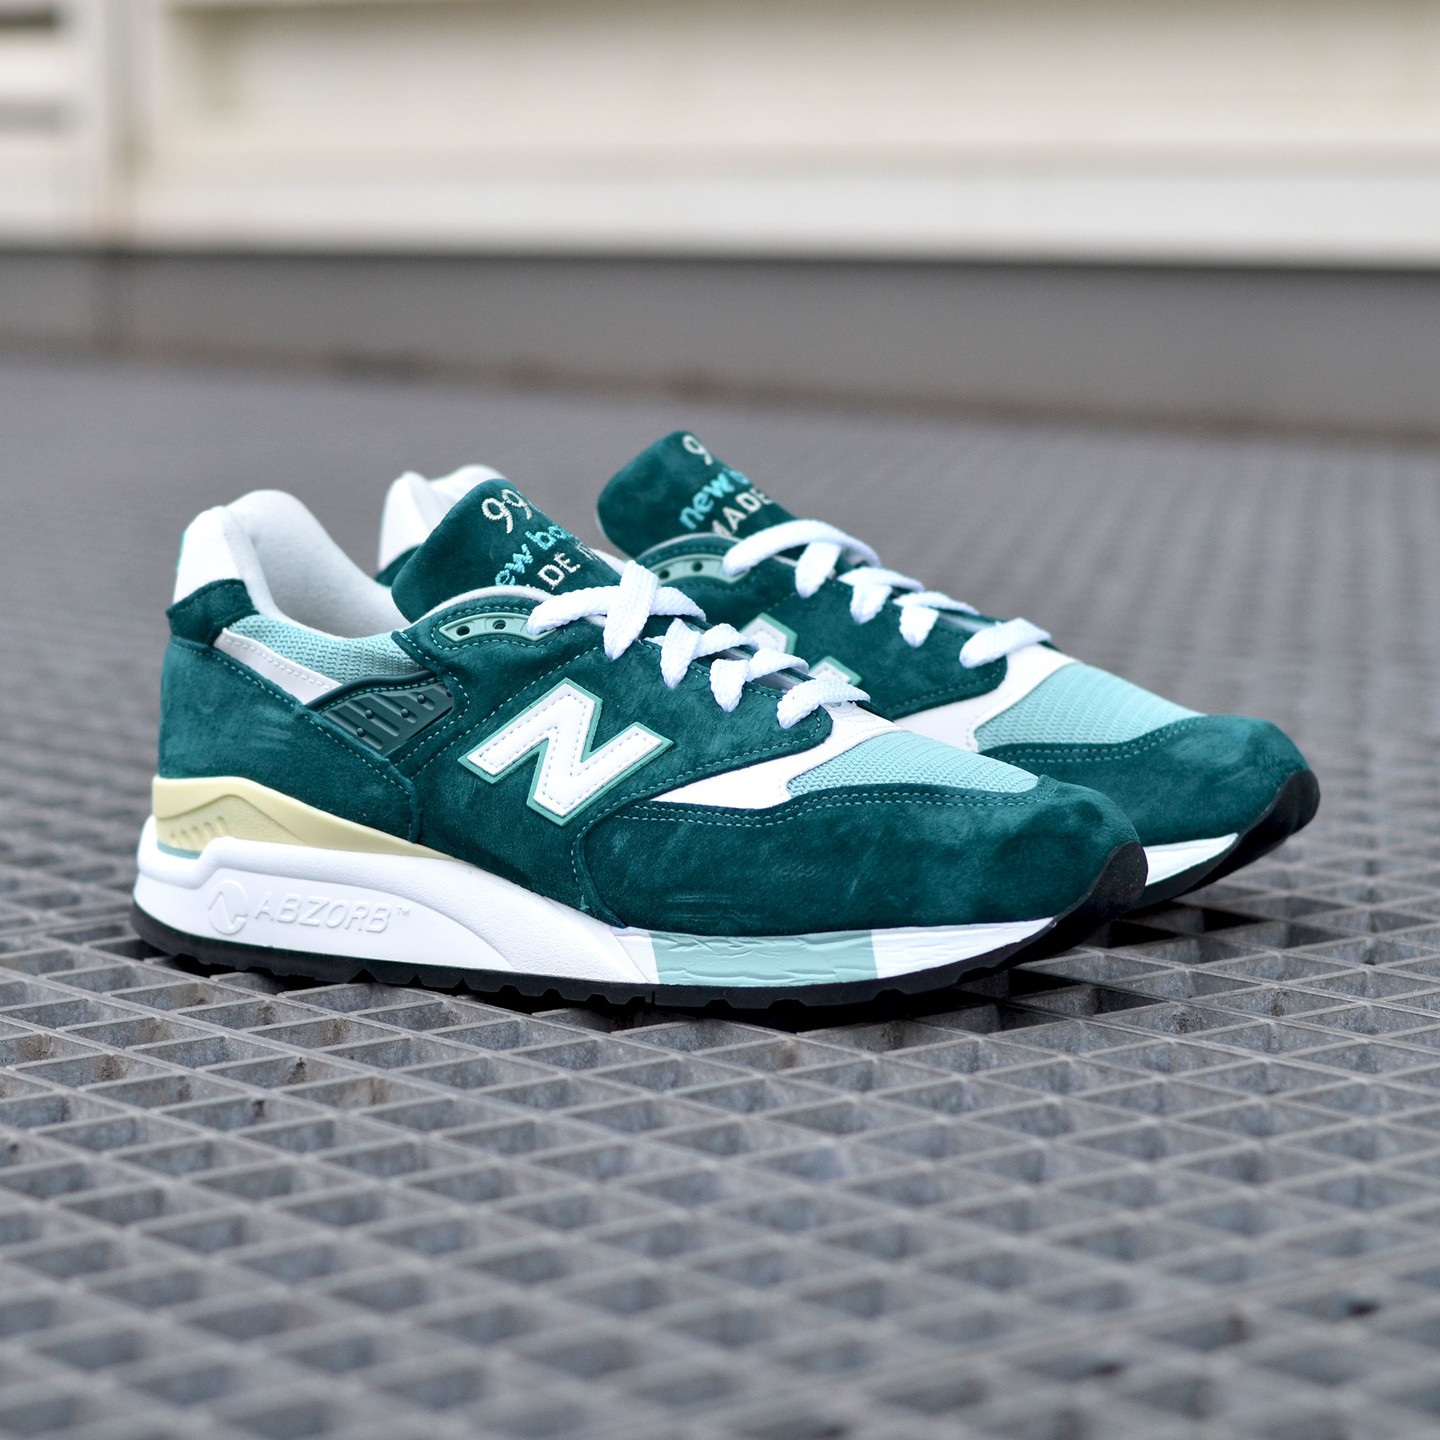 New Balance M998 Made in USA Sea Green / White M998CSAM-45.5